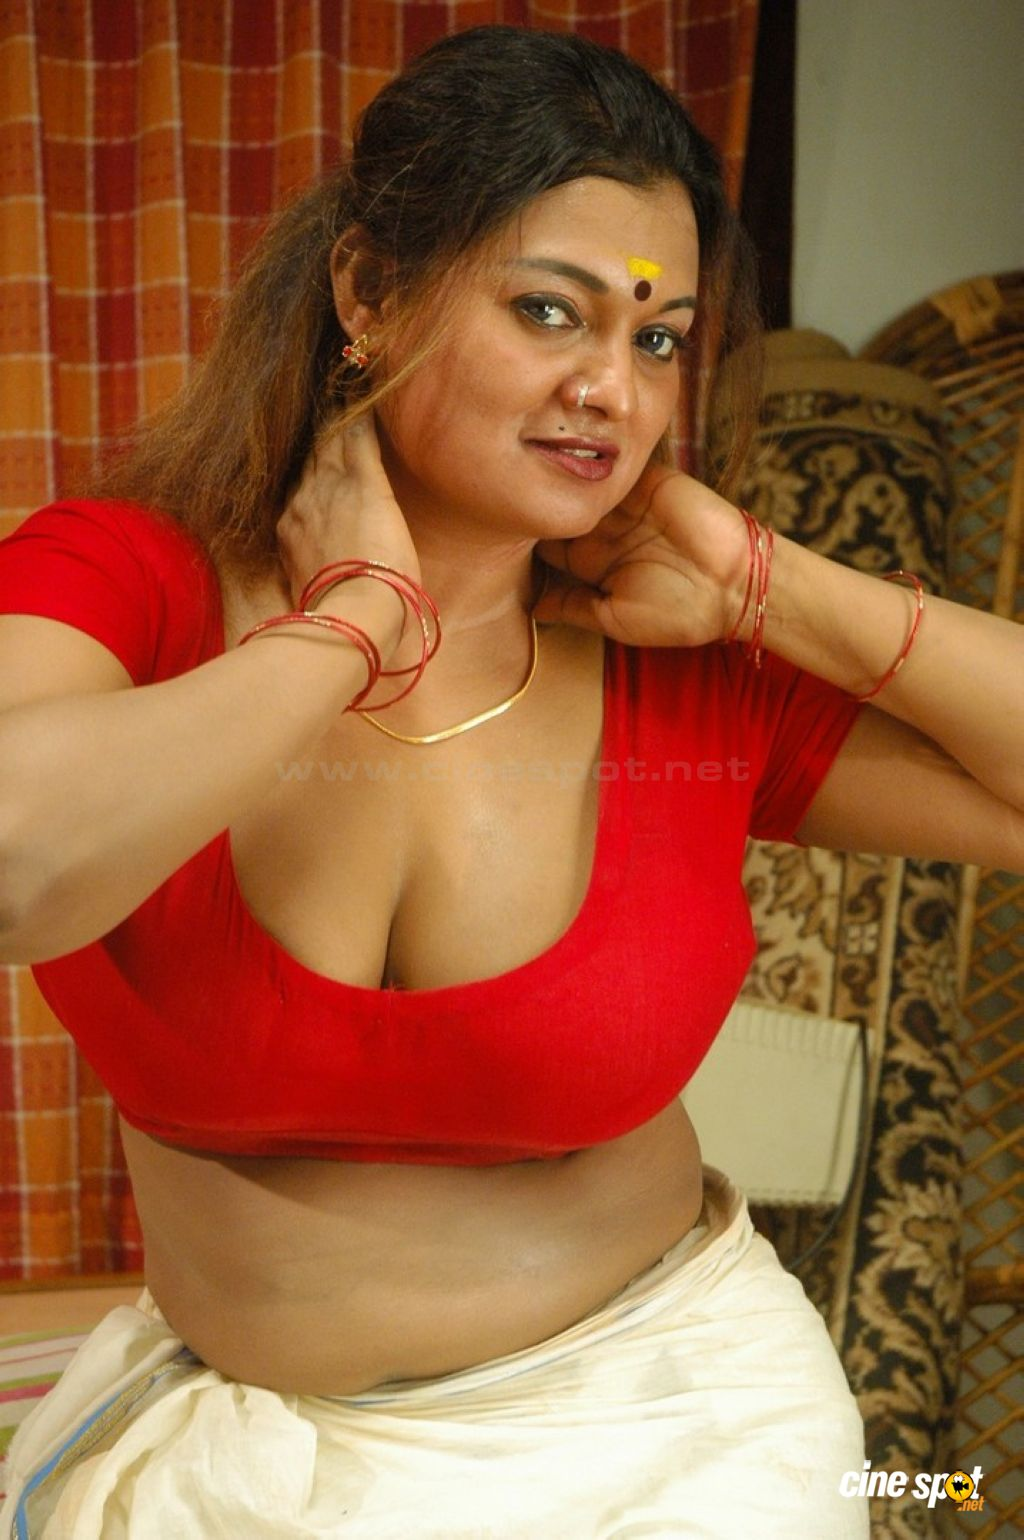 Bengal naked girls jpg